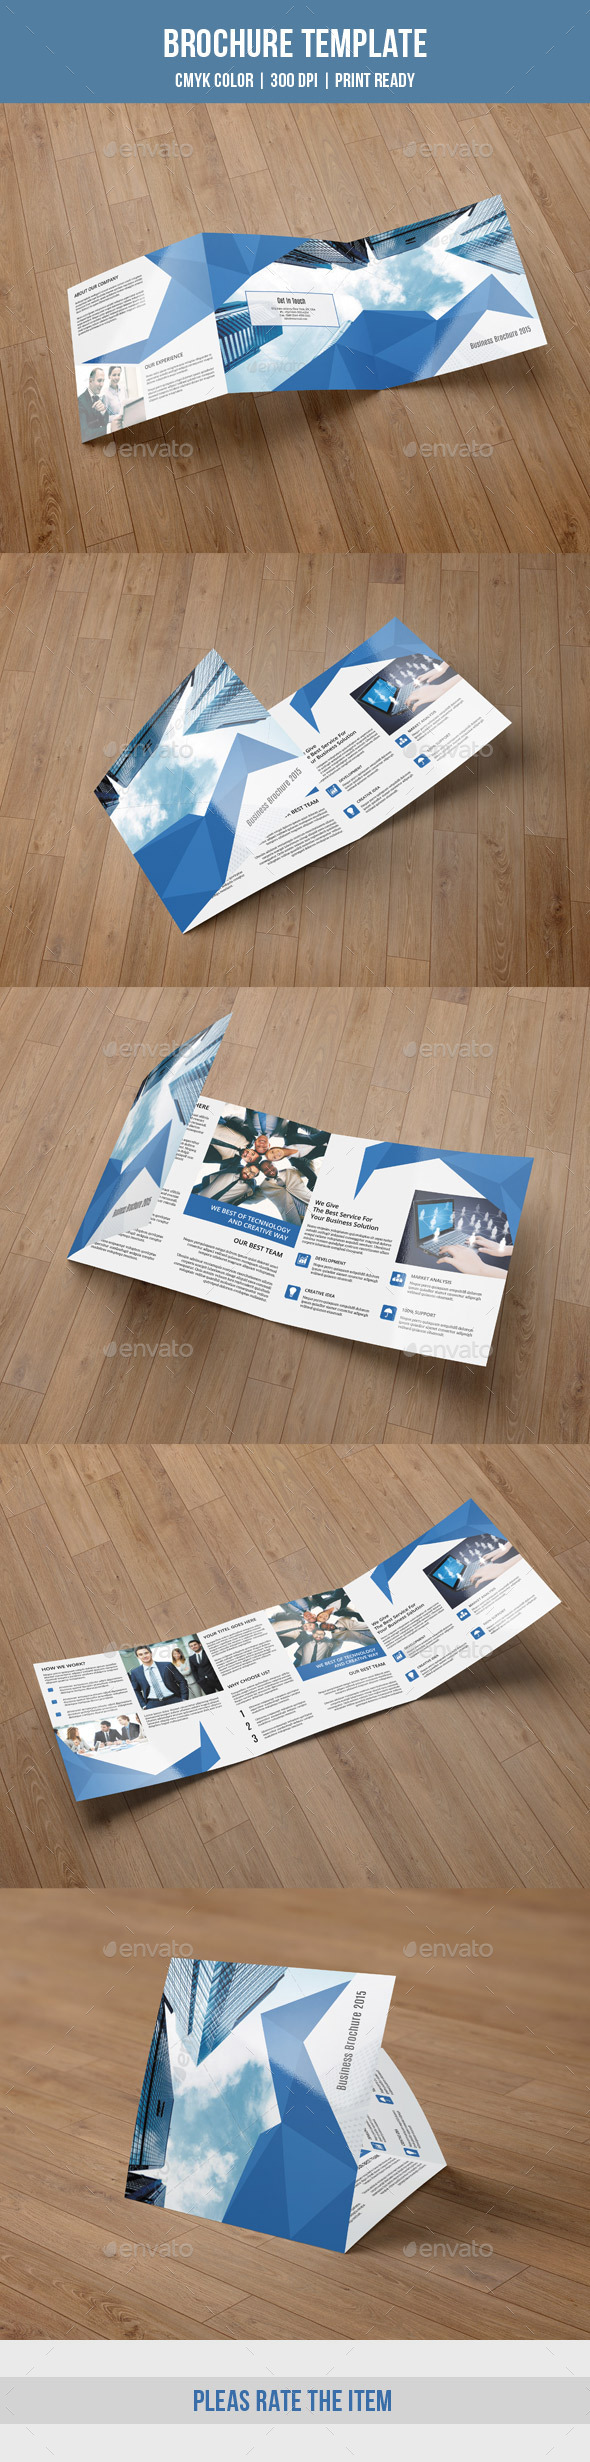 Abstract Square Trifold Brochure-V54 - Corporate Brochures